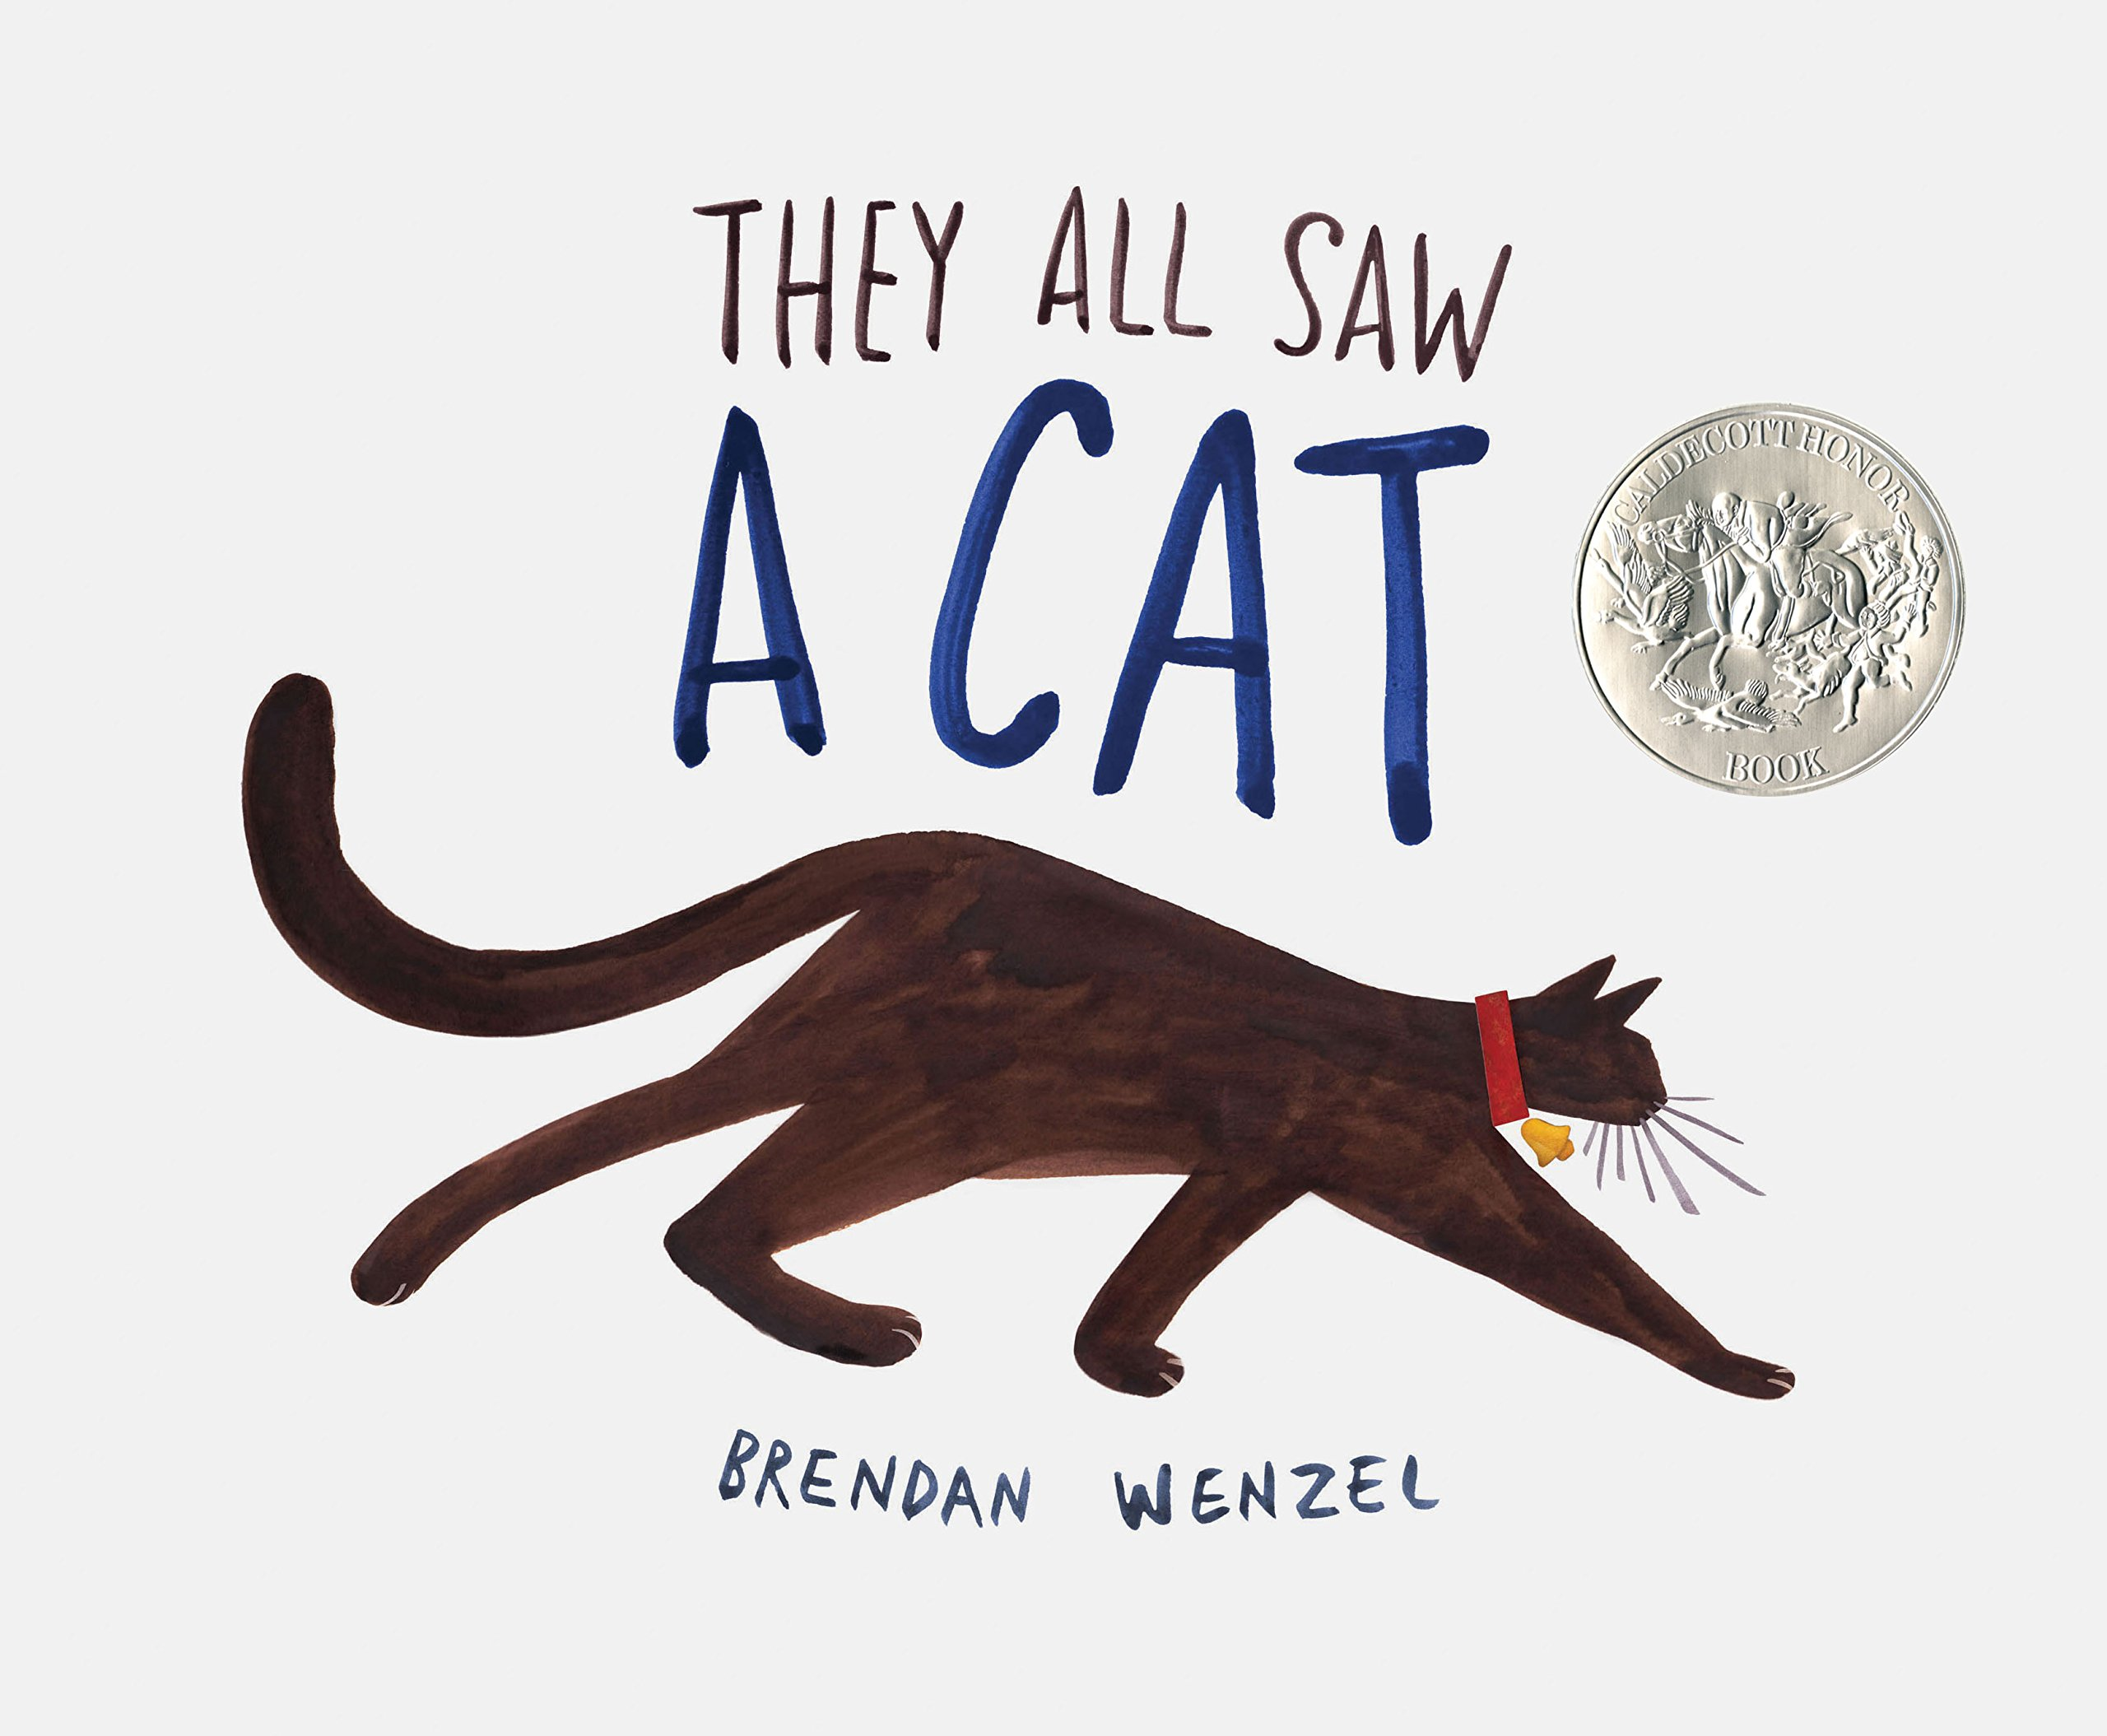 They All Saw a Cat by Brendan Wenzel